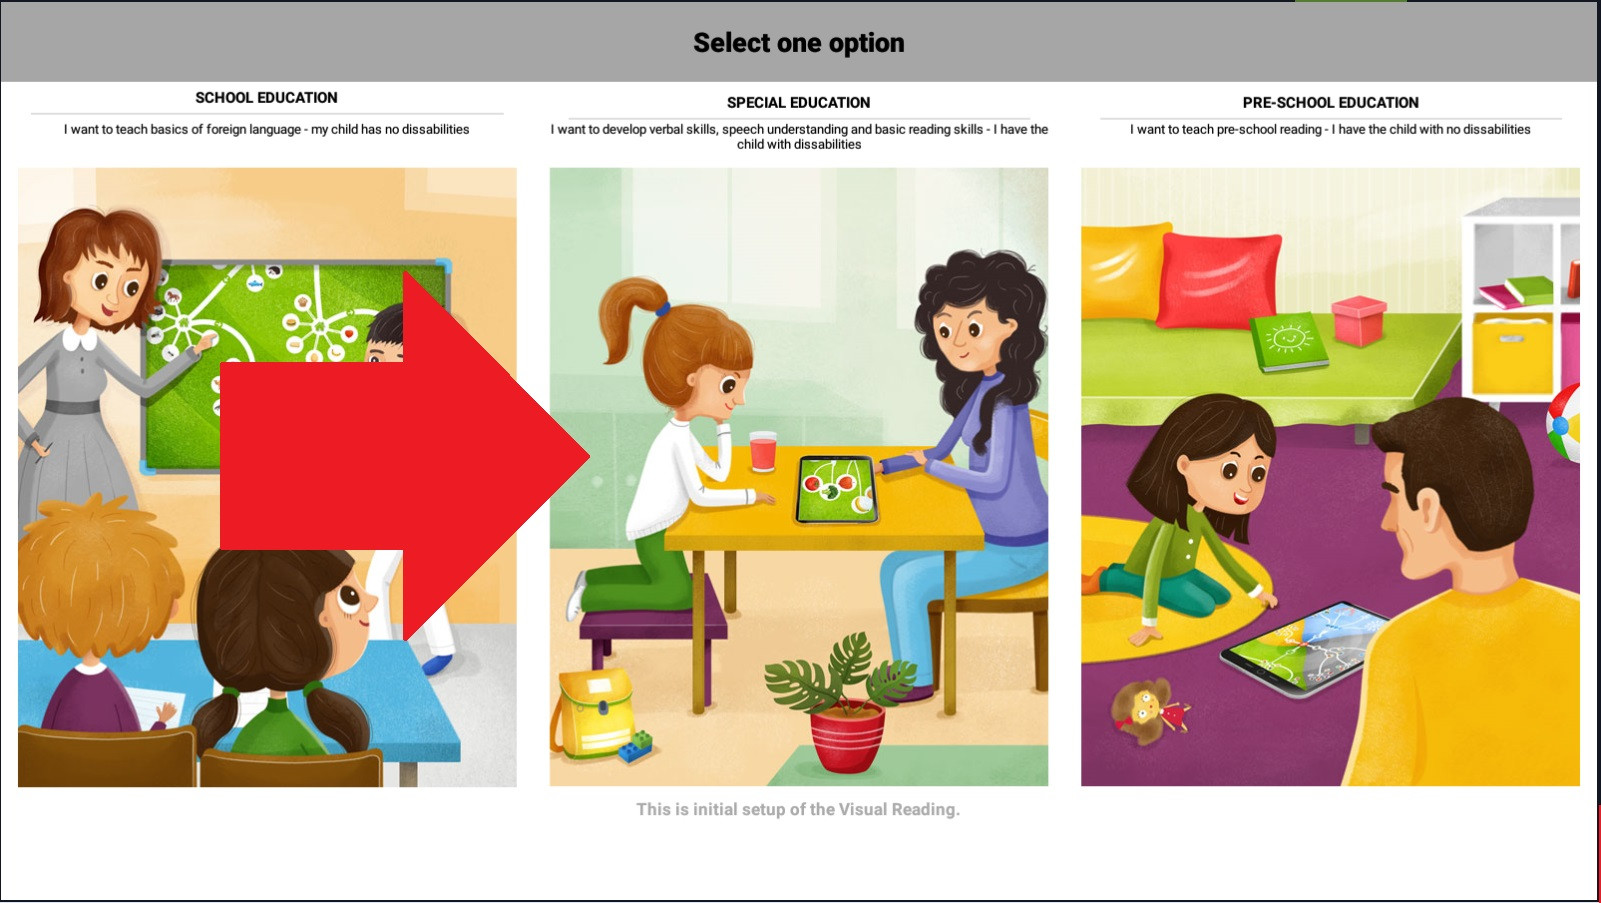 Step 3 - choose Special Education